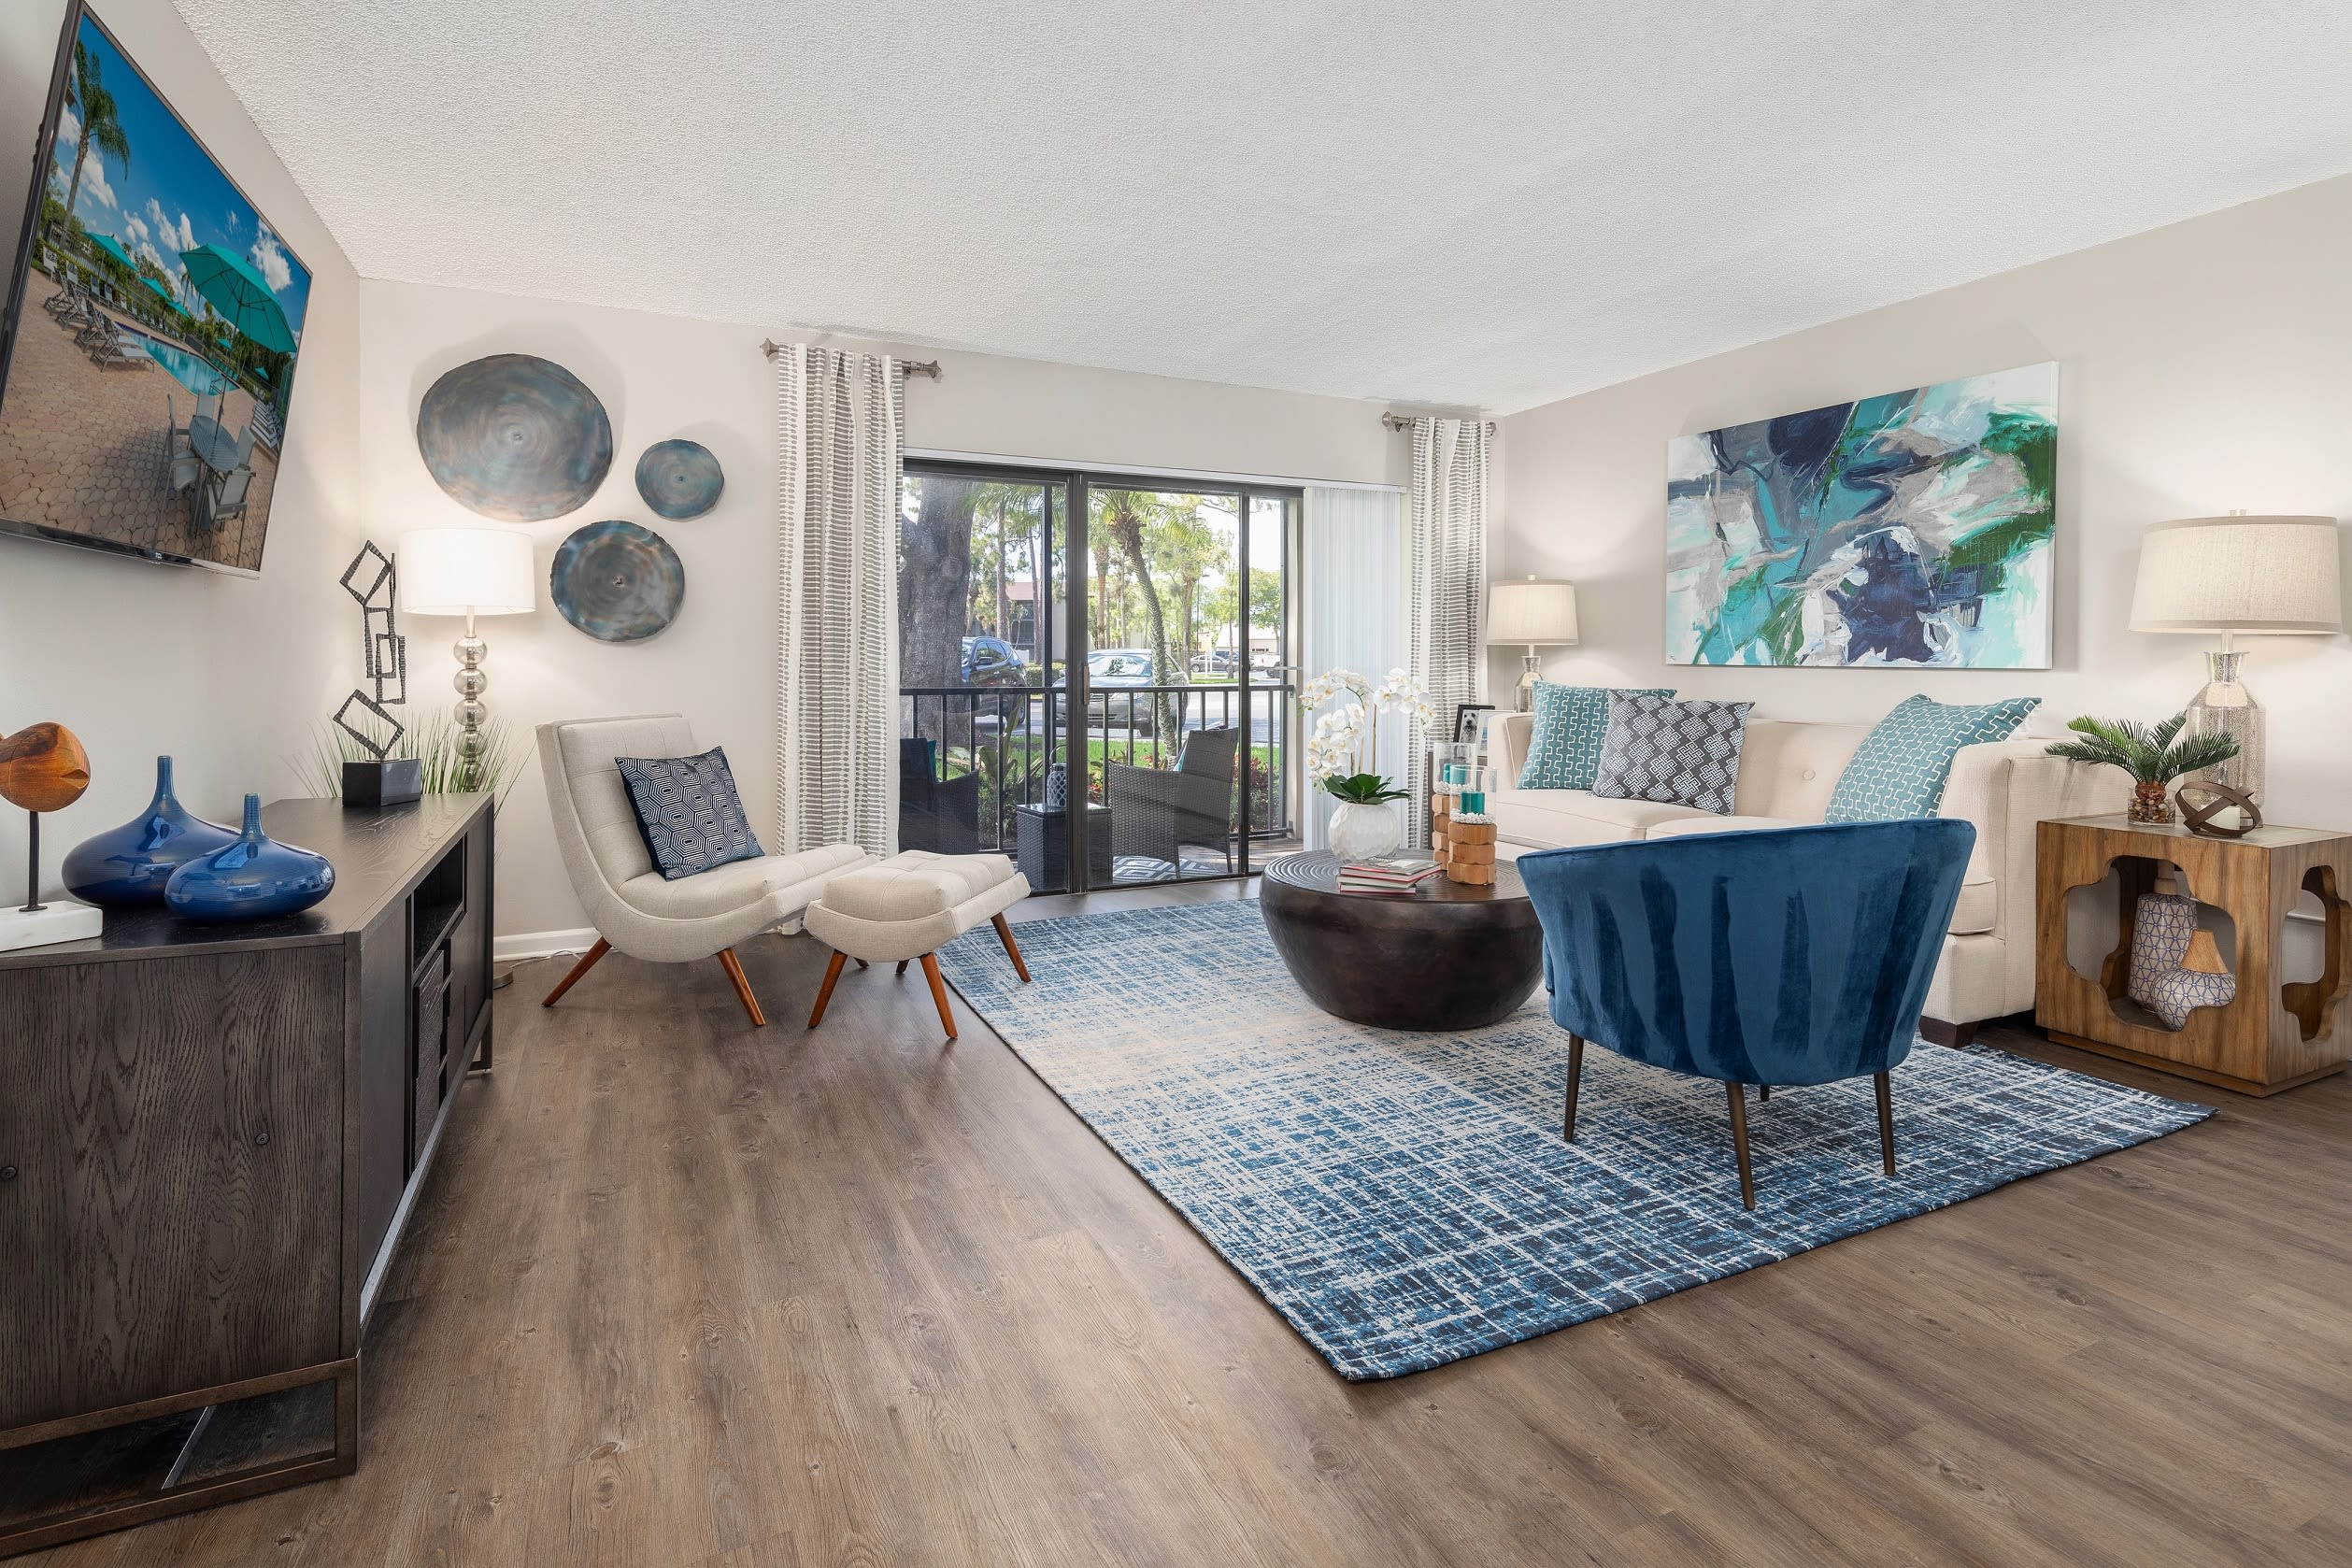 Open concept floor plan with hardwood floors and modern decor at Verse at Royal Palm Beach in Royal Palm Beach, Florida